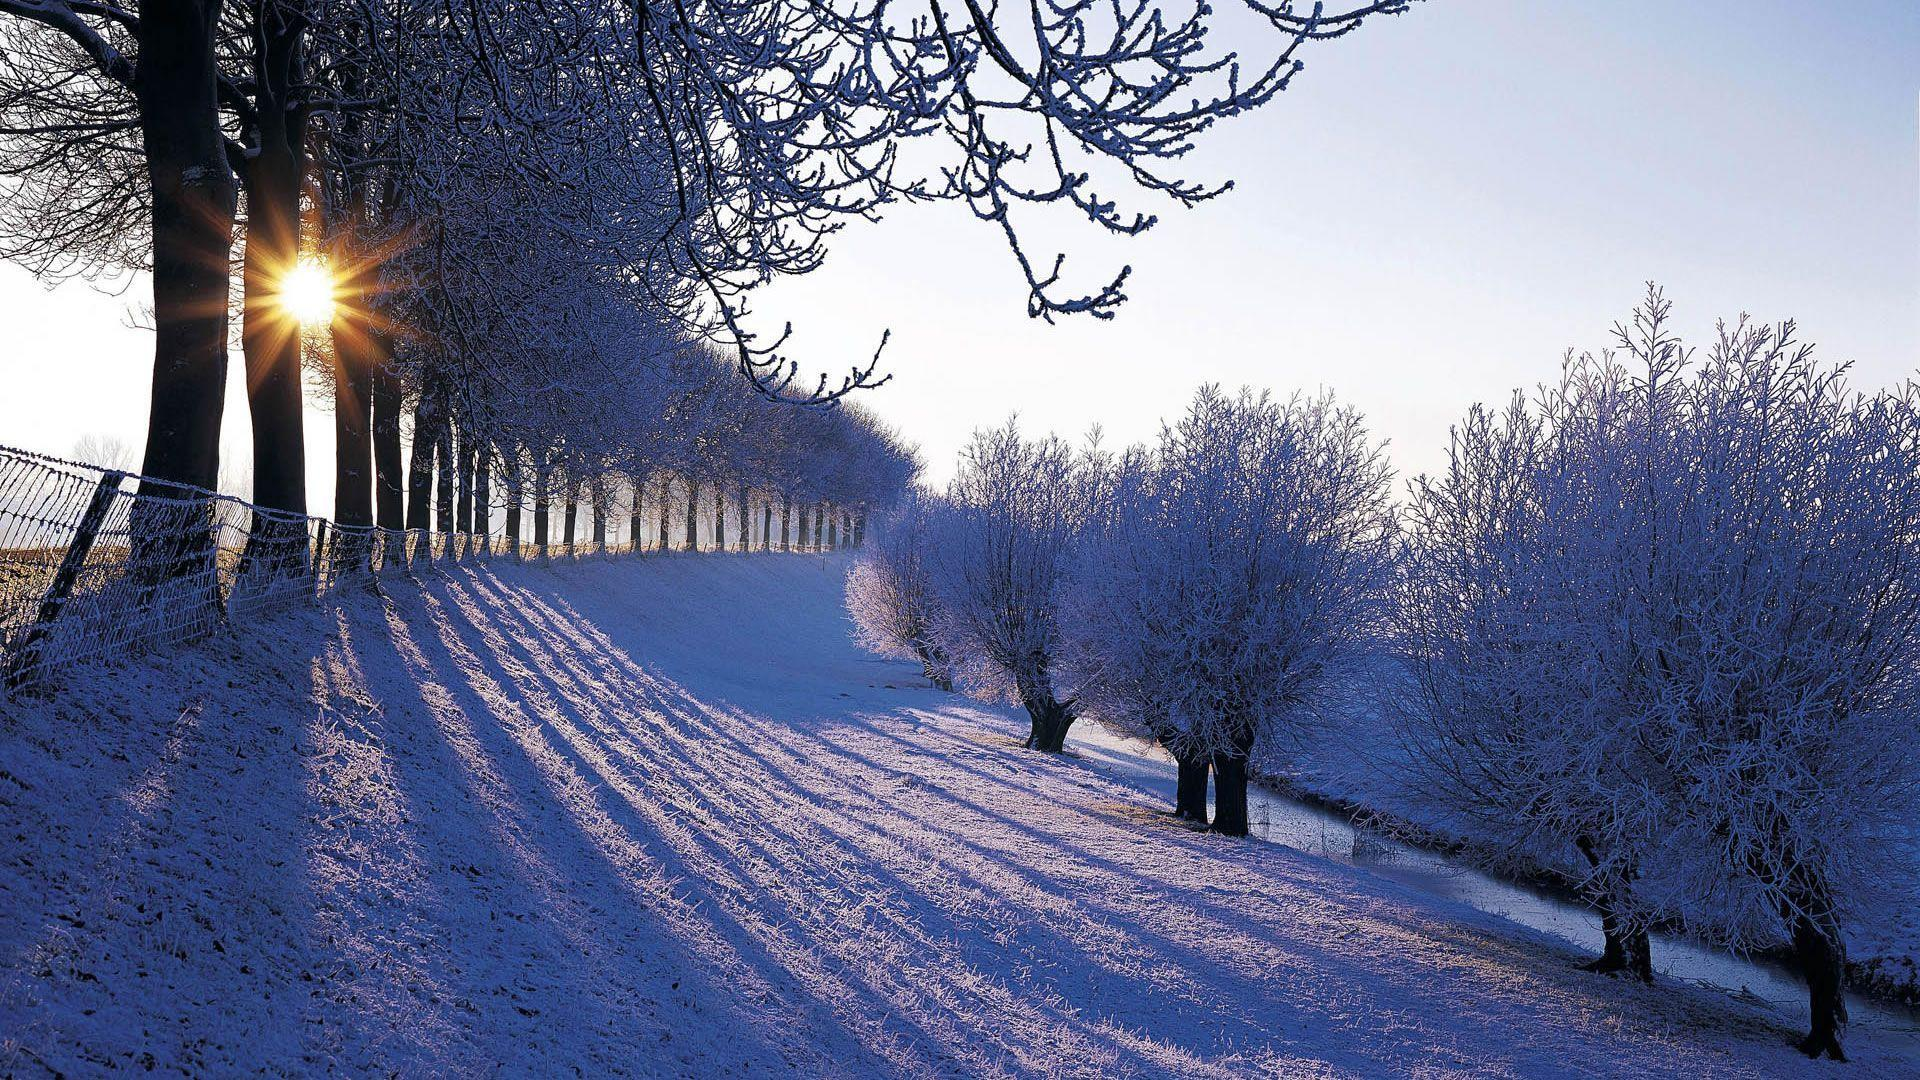 Winter Landscapes Winter Wallpapers For Iphone 5 , Free Widescreen ...